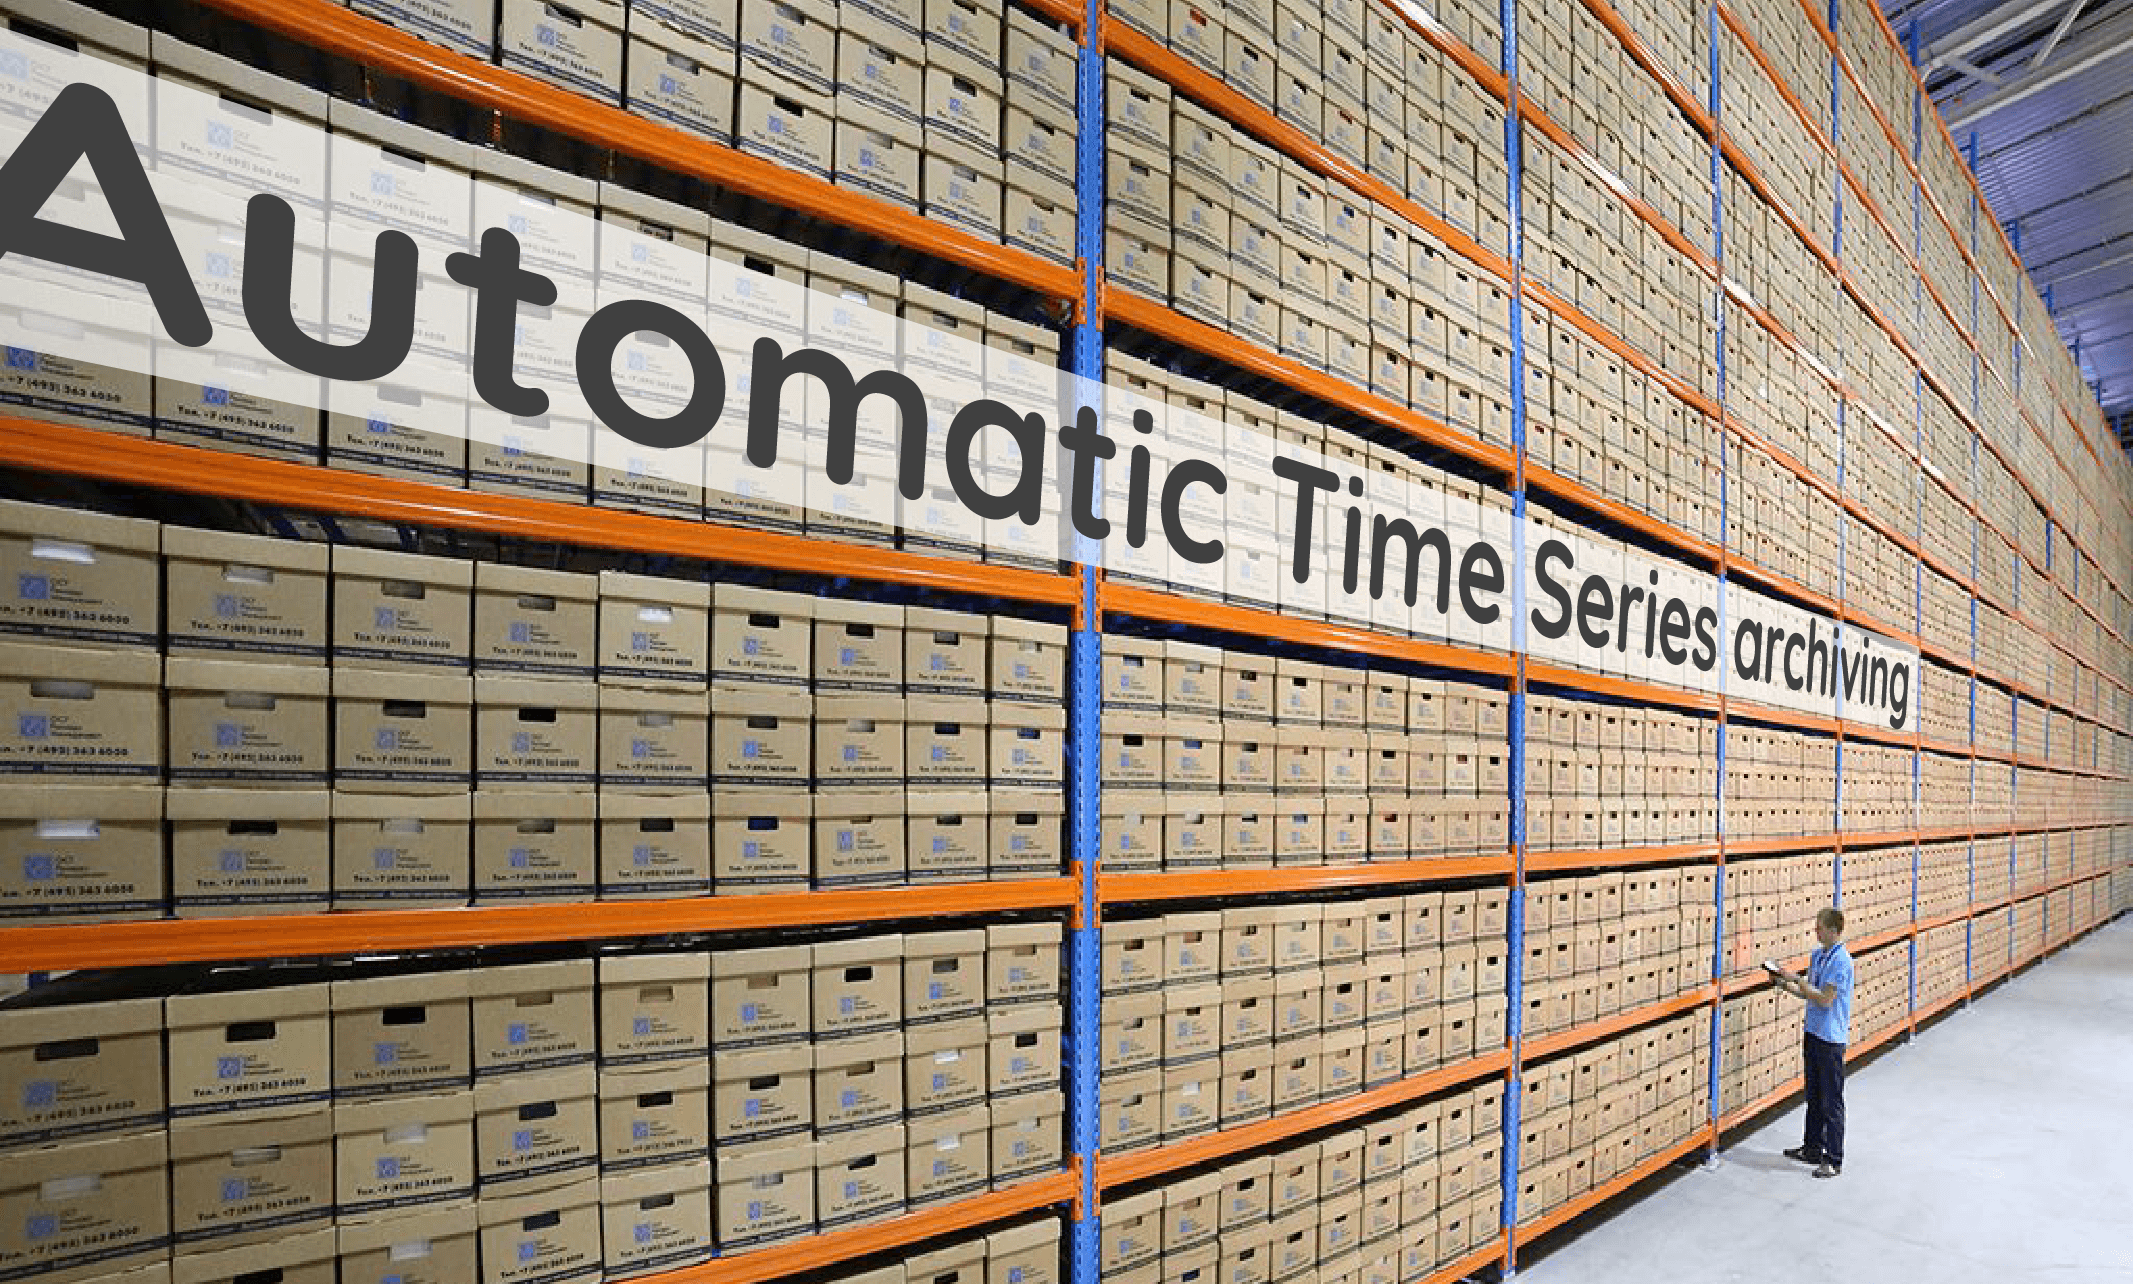 Automatic time series archiving